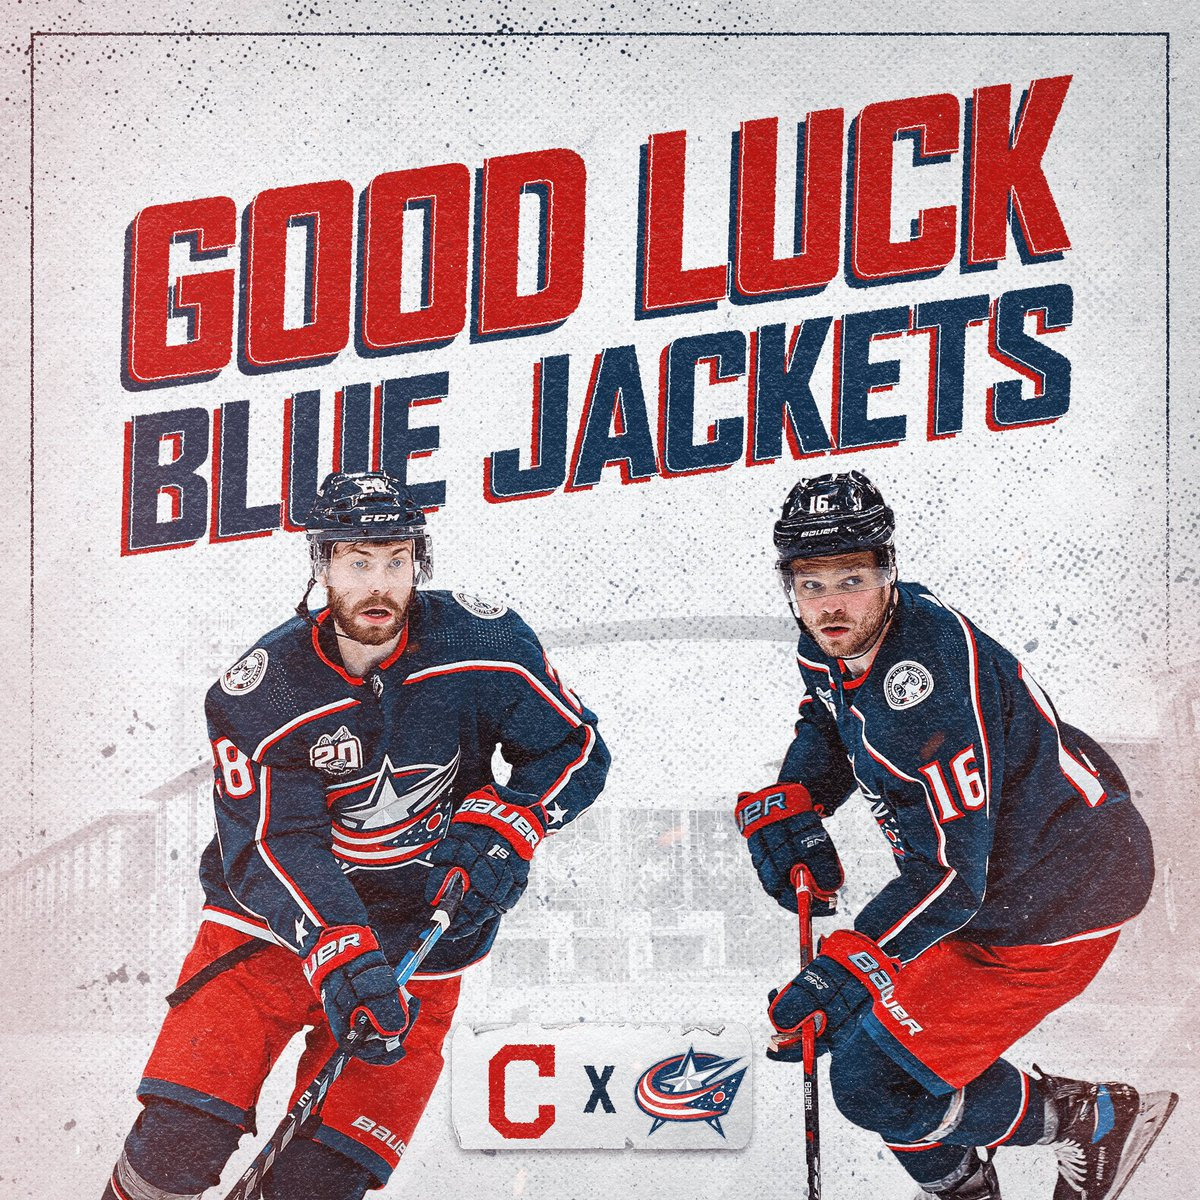 Driving down I-71 to give you a good luck high five, @BlueJacketsNHL! ✋ Let's get it!